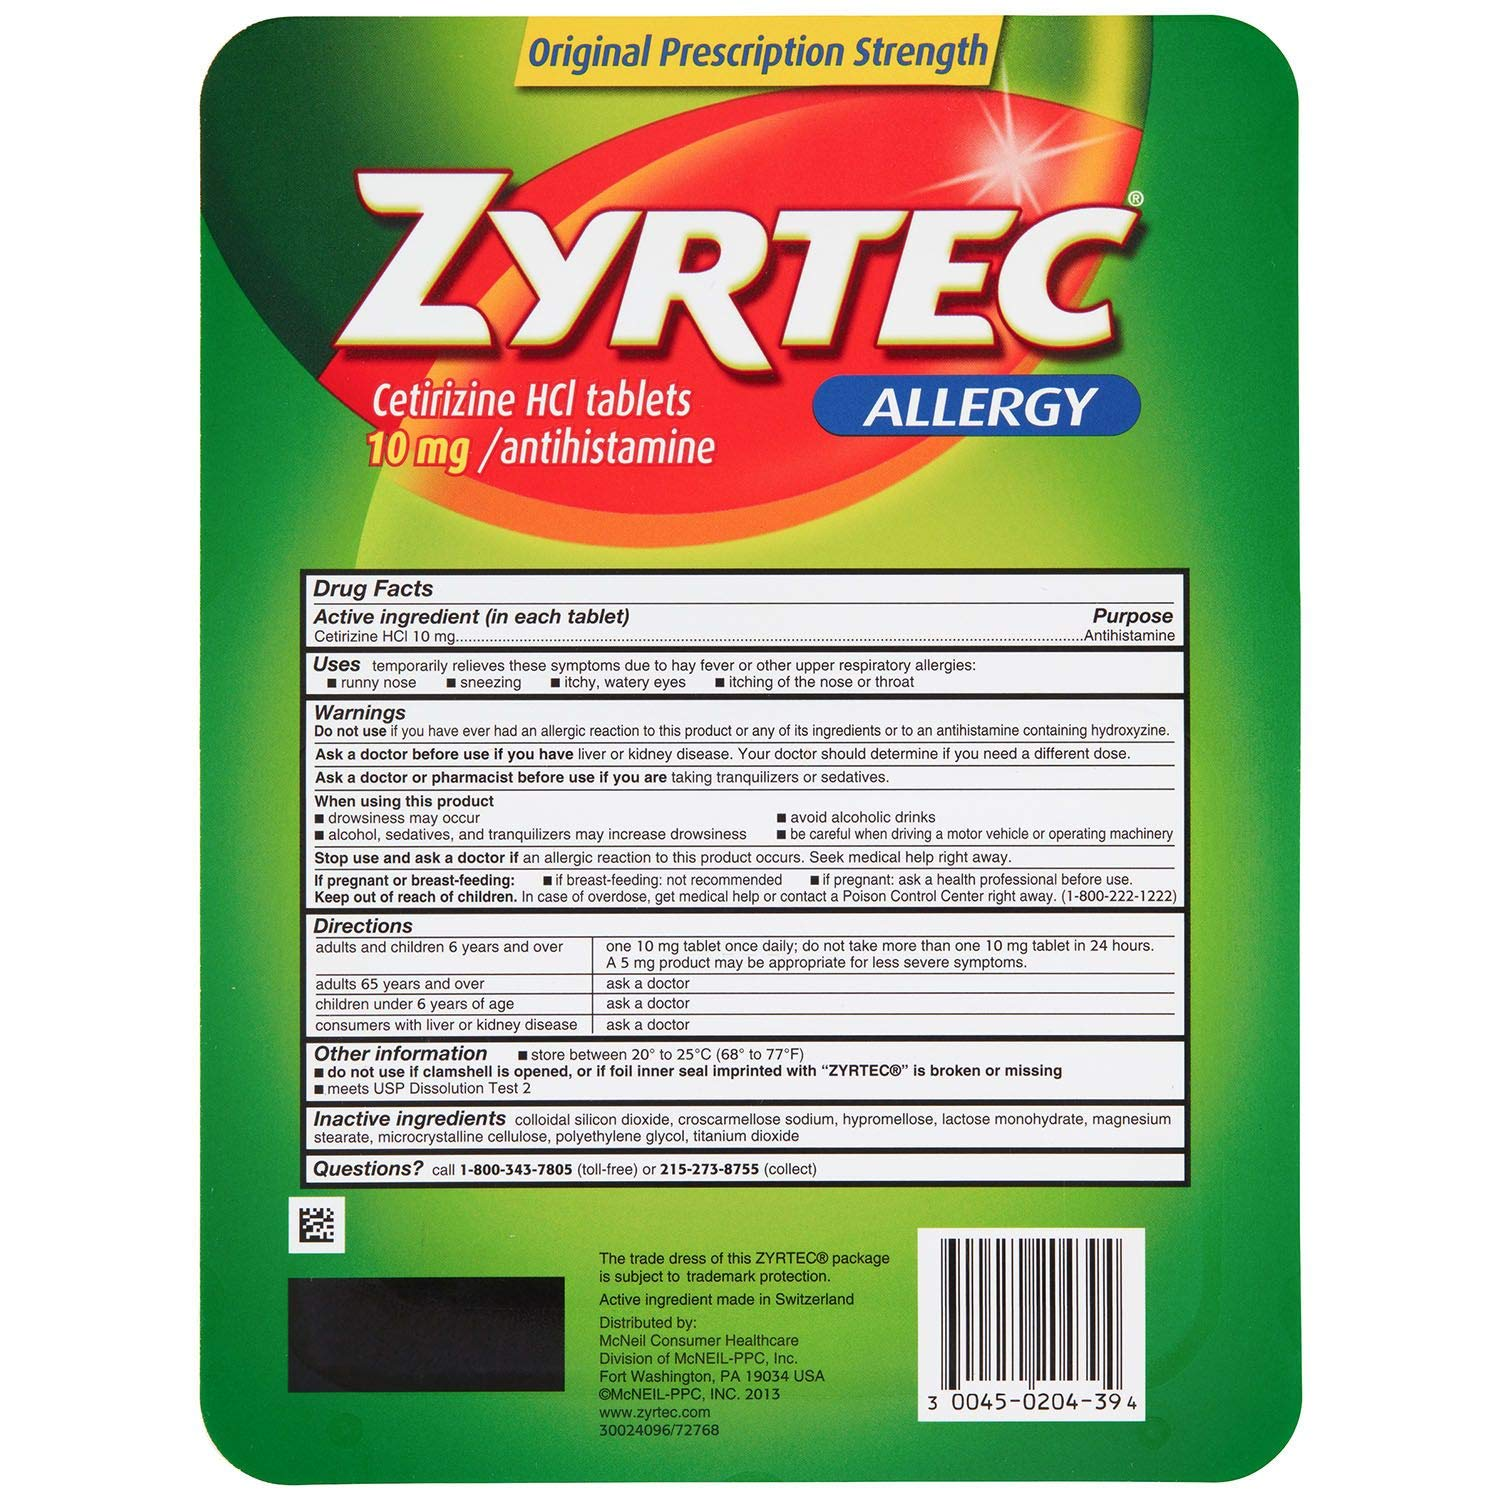 zyrtec compare prices and deals